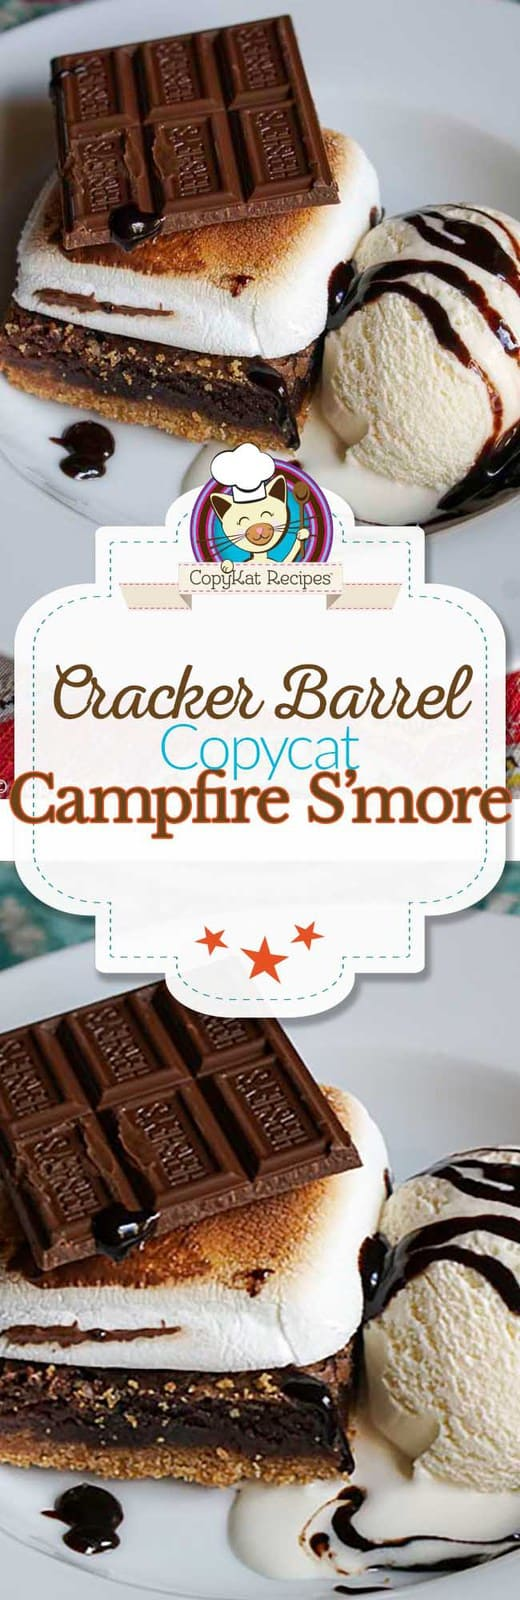 Make your own delicious Cracker Barrel Campfire S'more at home.  #copycat #crackerbarrel #chocolate #smore #dessert #campfire